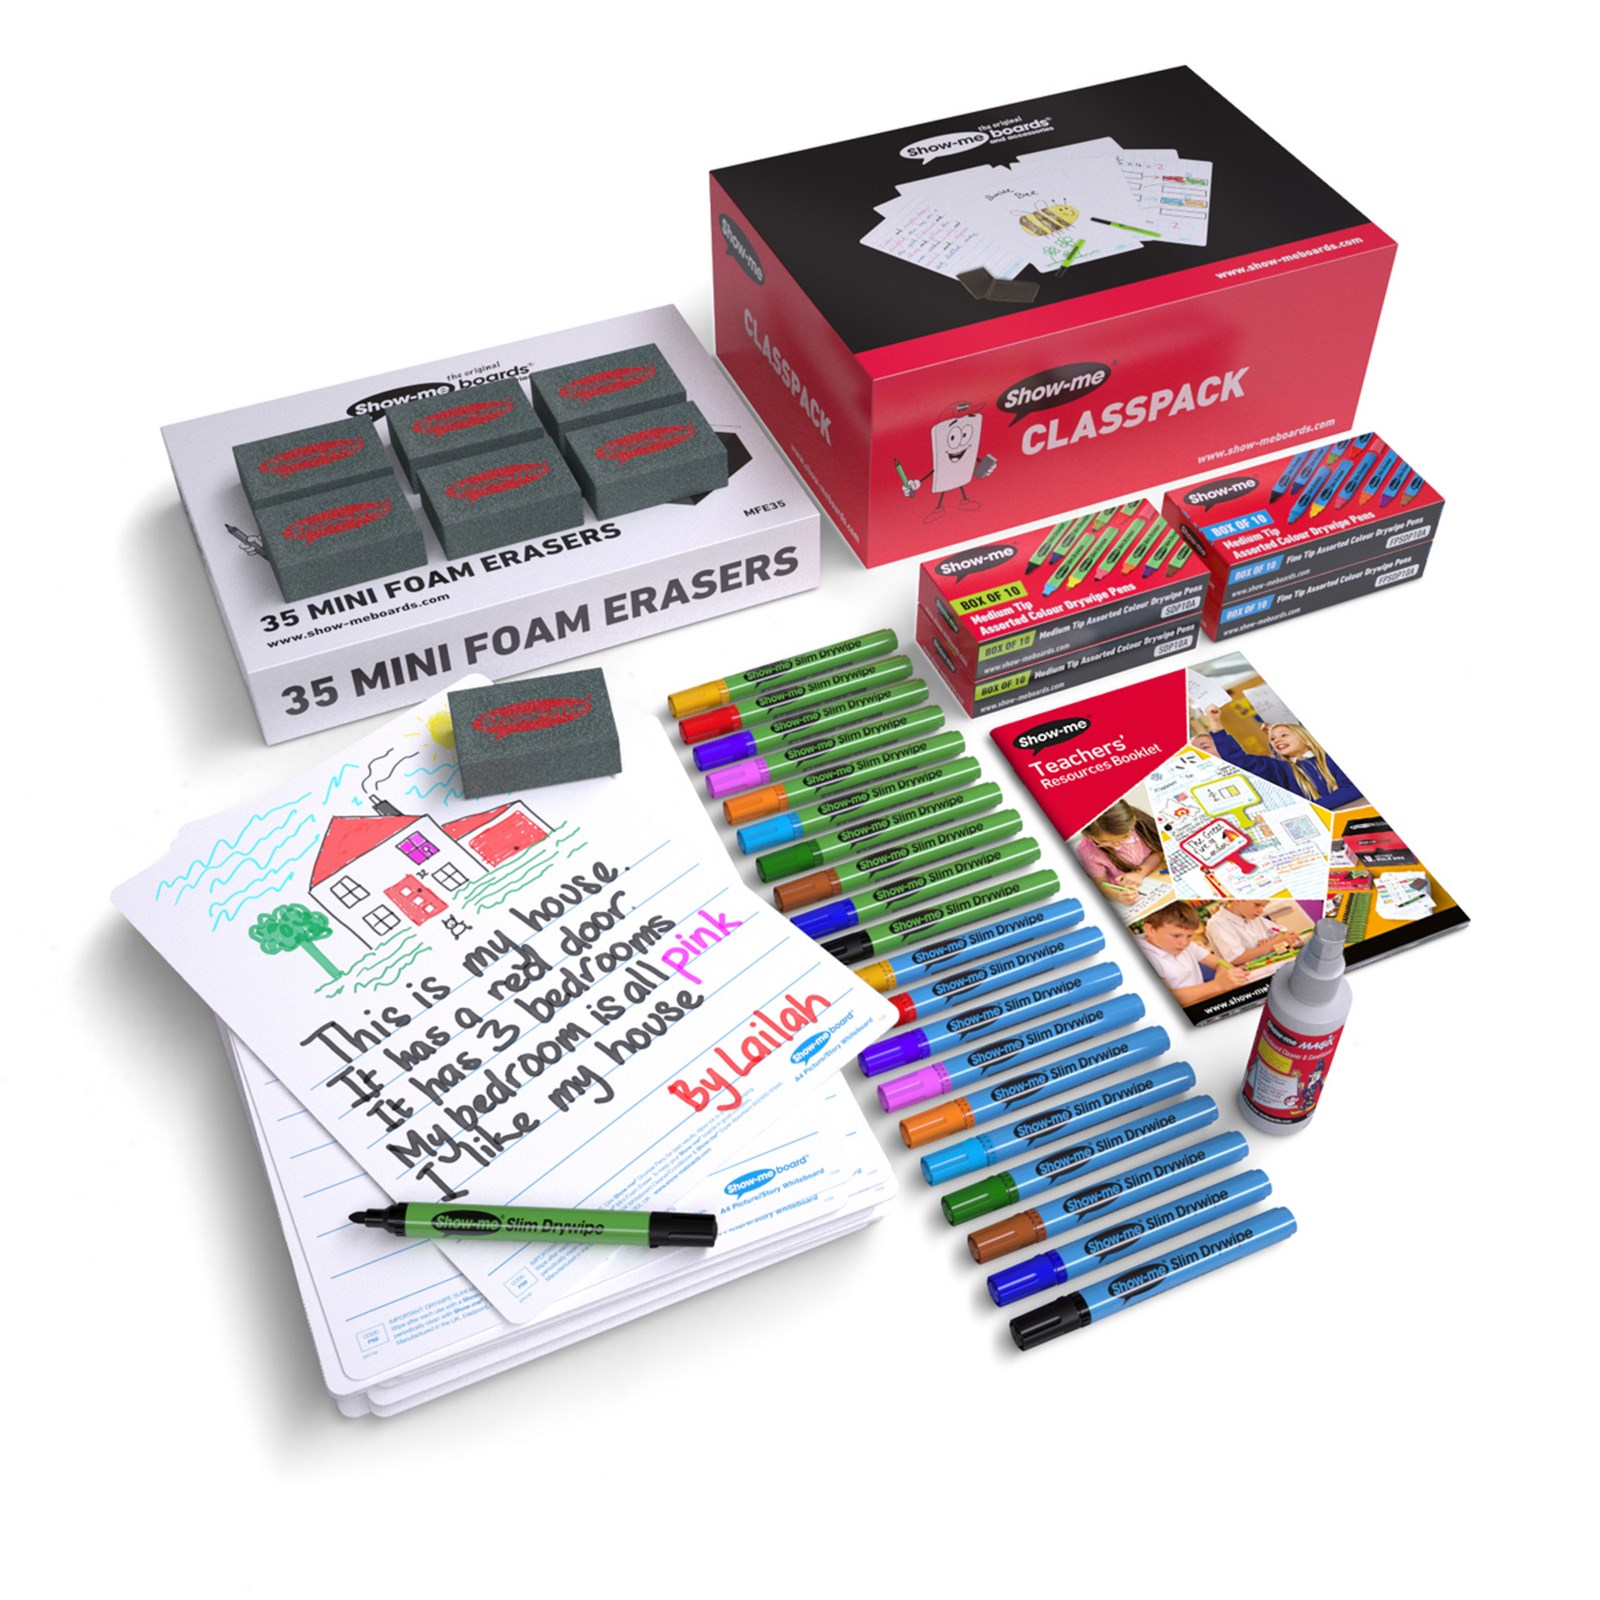 Show Me Picture and Story Boards Class Pack